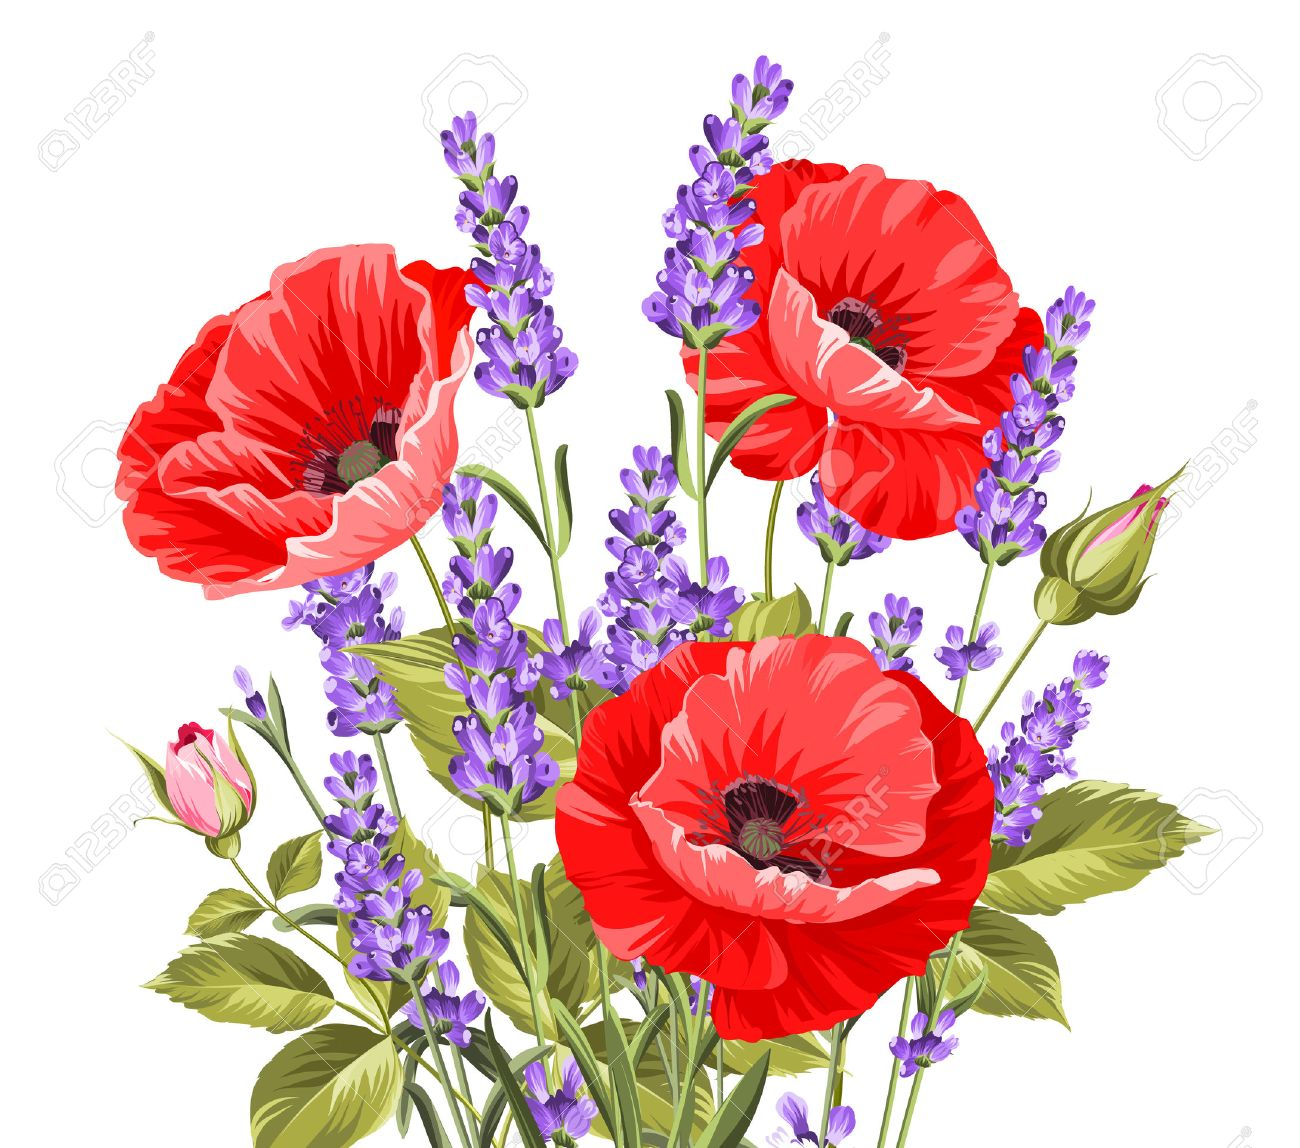 poppy wall stock photos royalty free poppy wall images and pictures